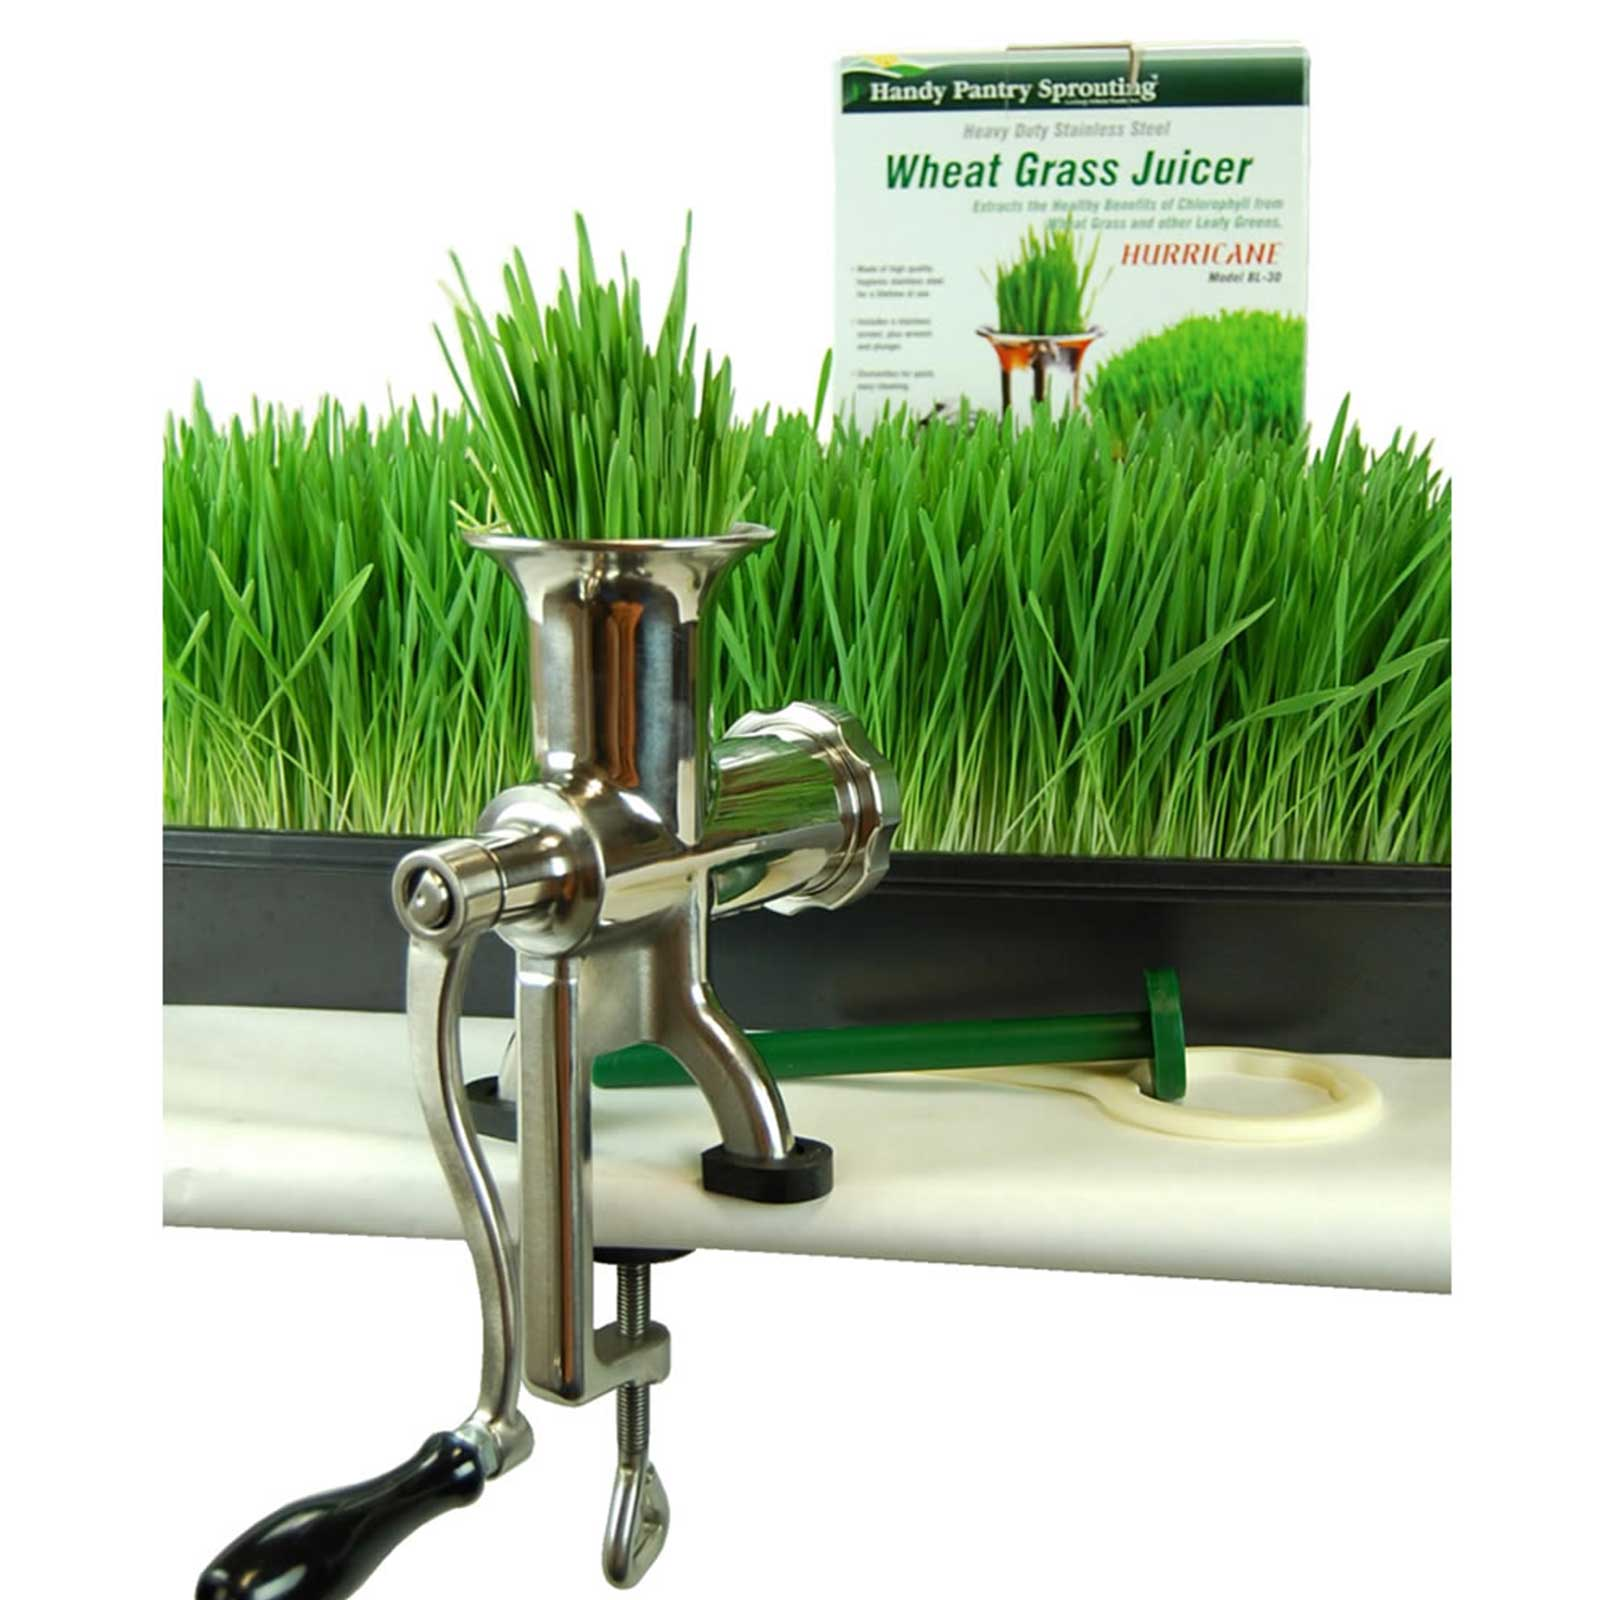 Handy Pantry HJ Hurricane Stainless Steel Manual Wheatgrass Juicer - Hand Crank